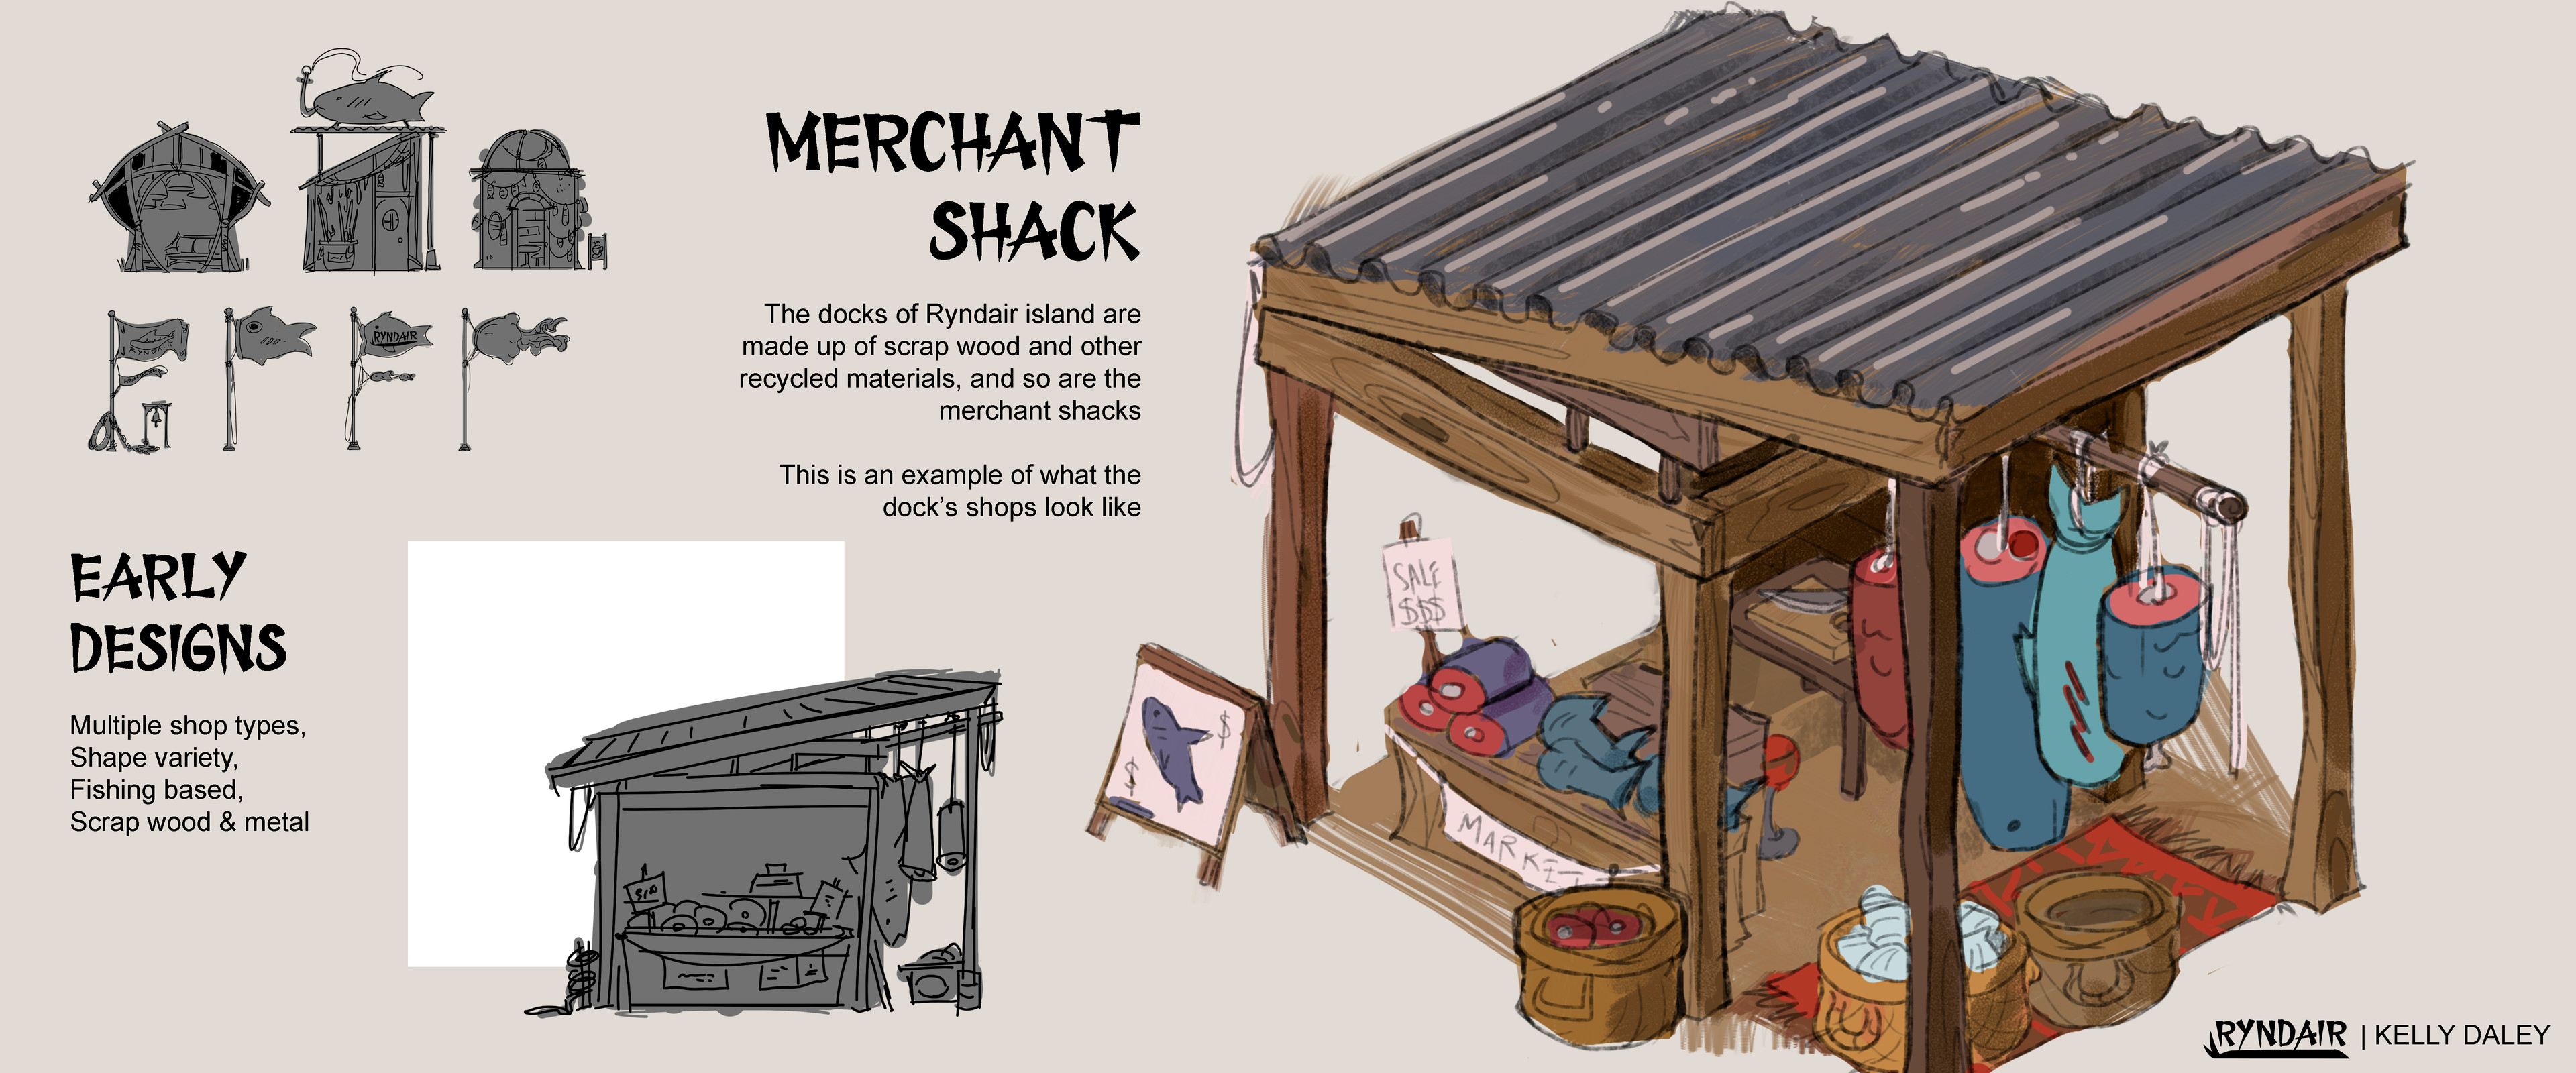 Design of a Merchant shack on one of the MANY piers.